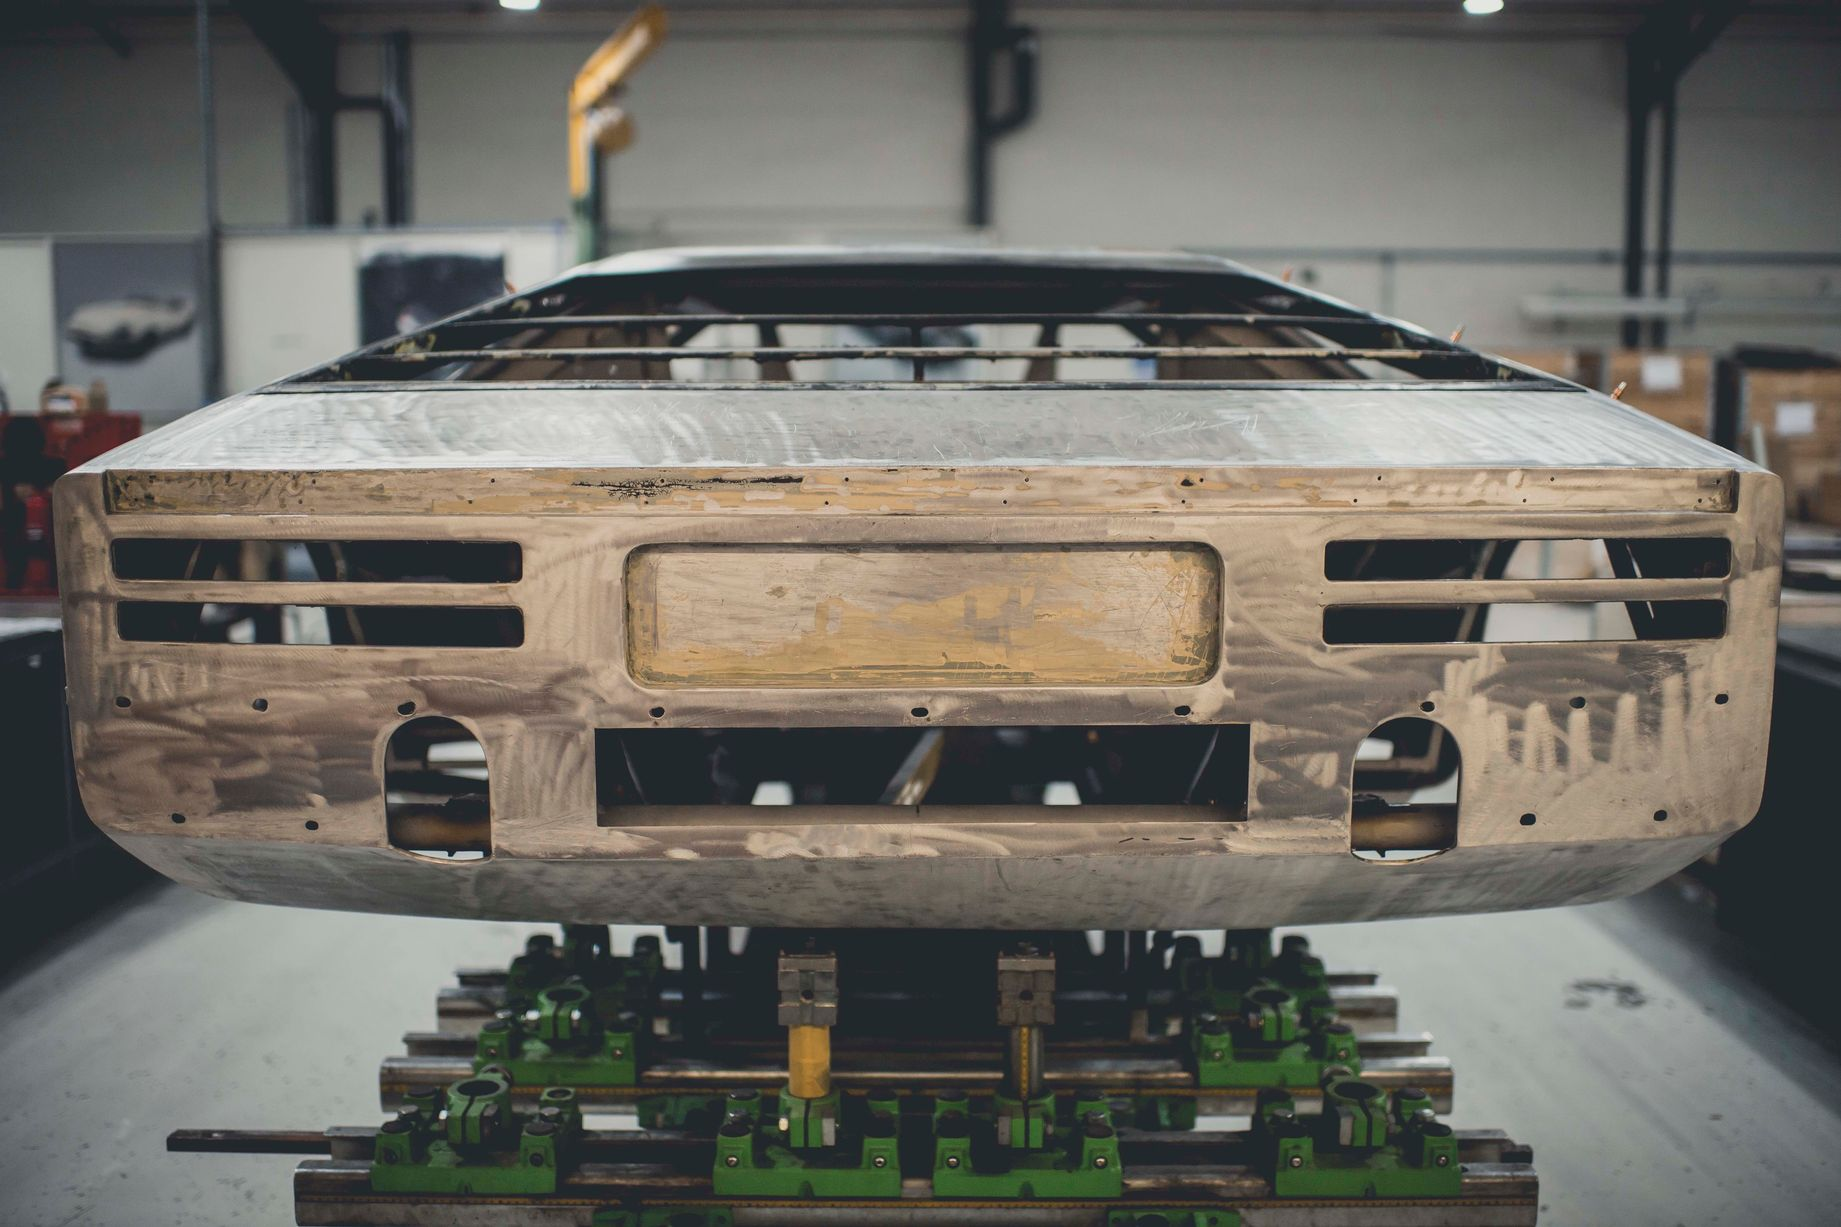 The Aston Martin Bulldog underwent a number of modifications early in its life in relation to the exhaust's outlet positions